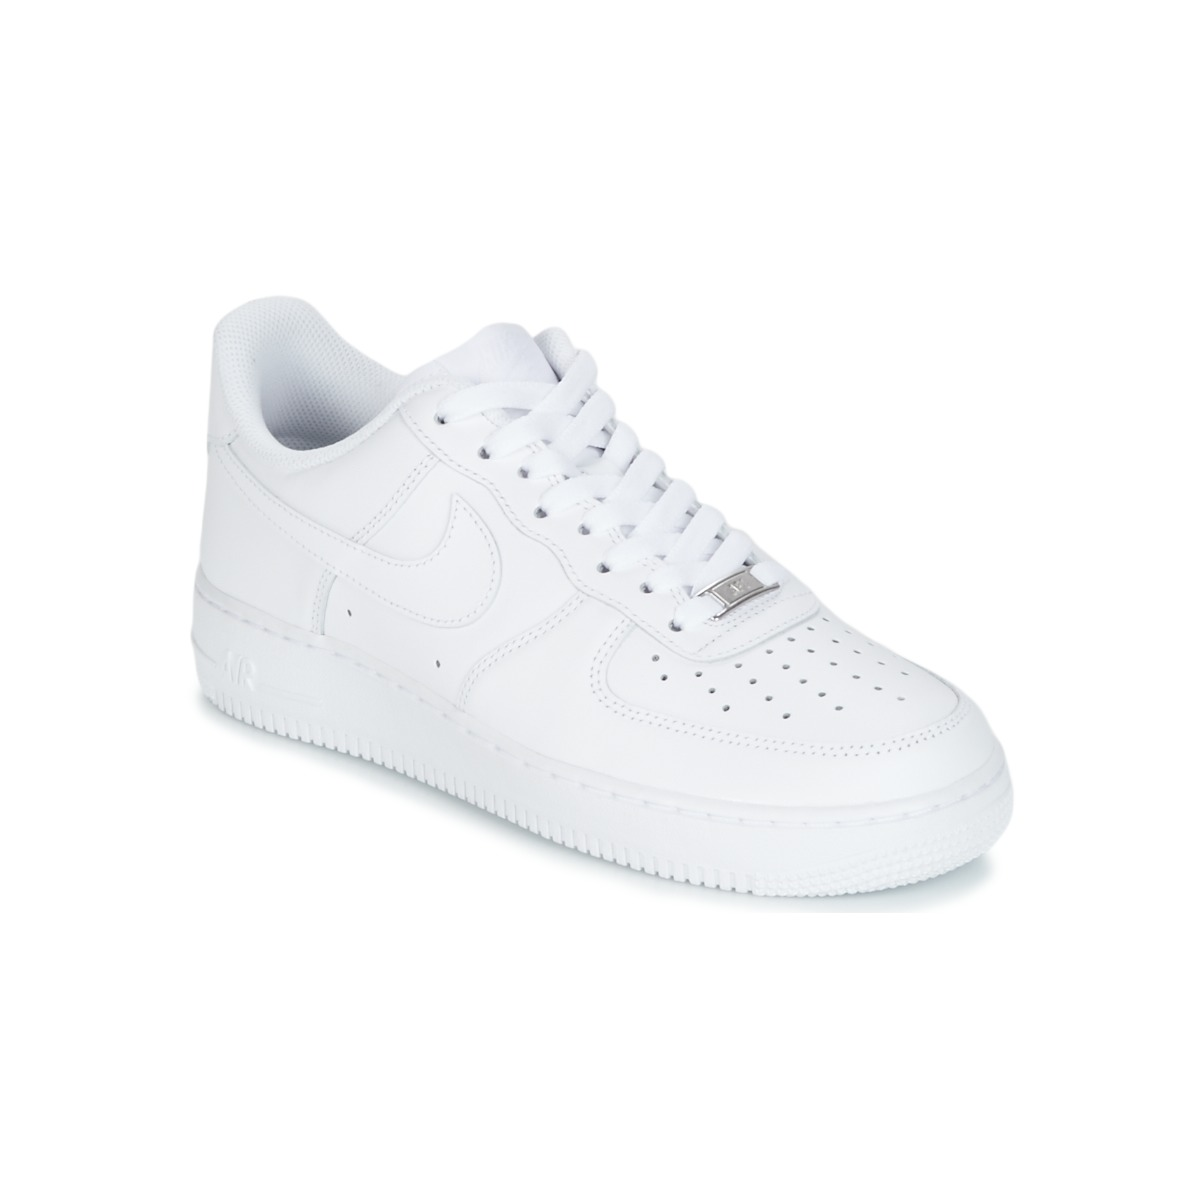 sélection premium dcb78 b797b Cheap Nike Air Force 1 Trainers | Men's, Women's & Kids'